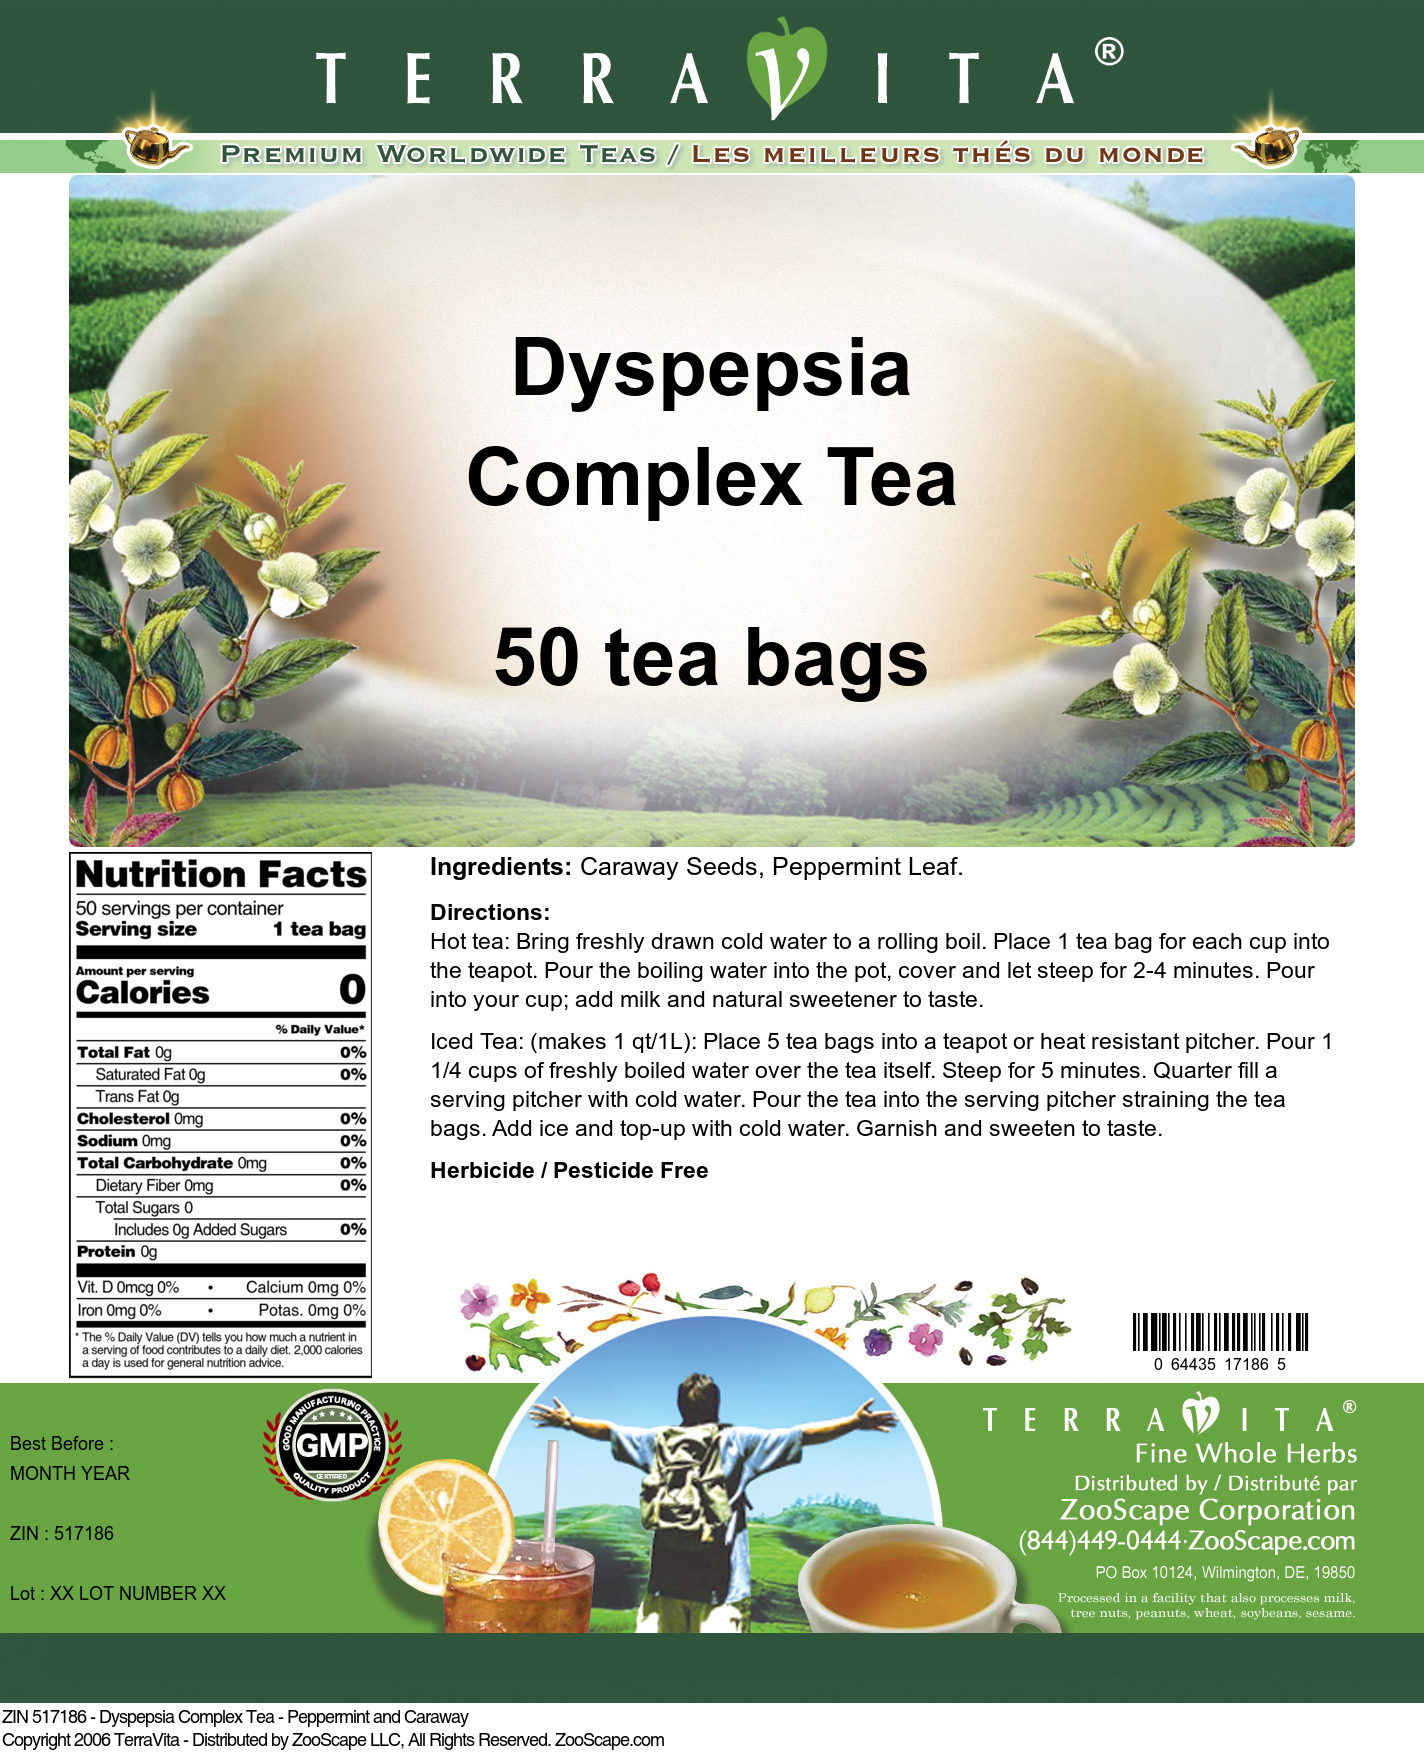 Dyspepsia Complex Tea - Peppermint and Caraway